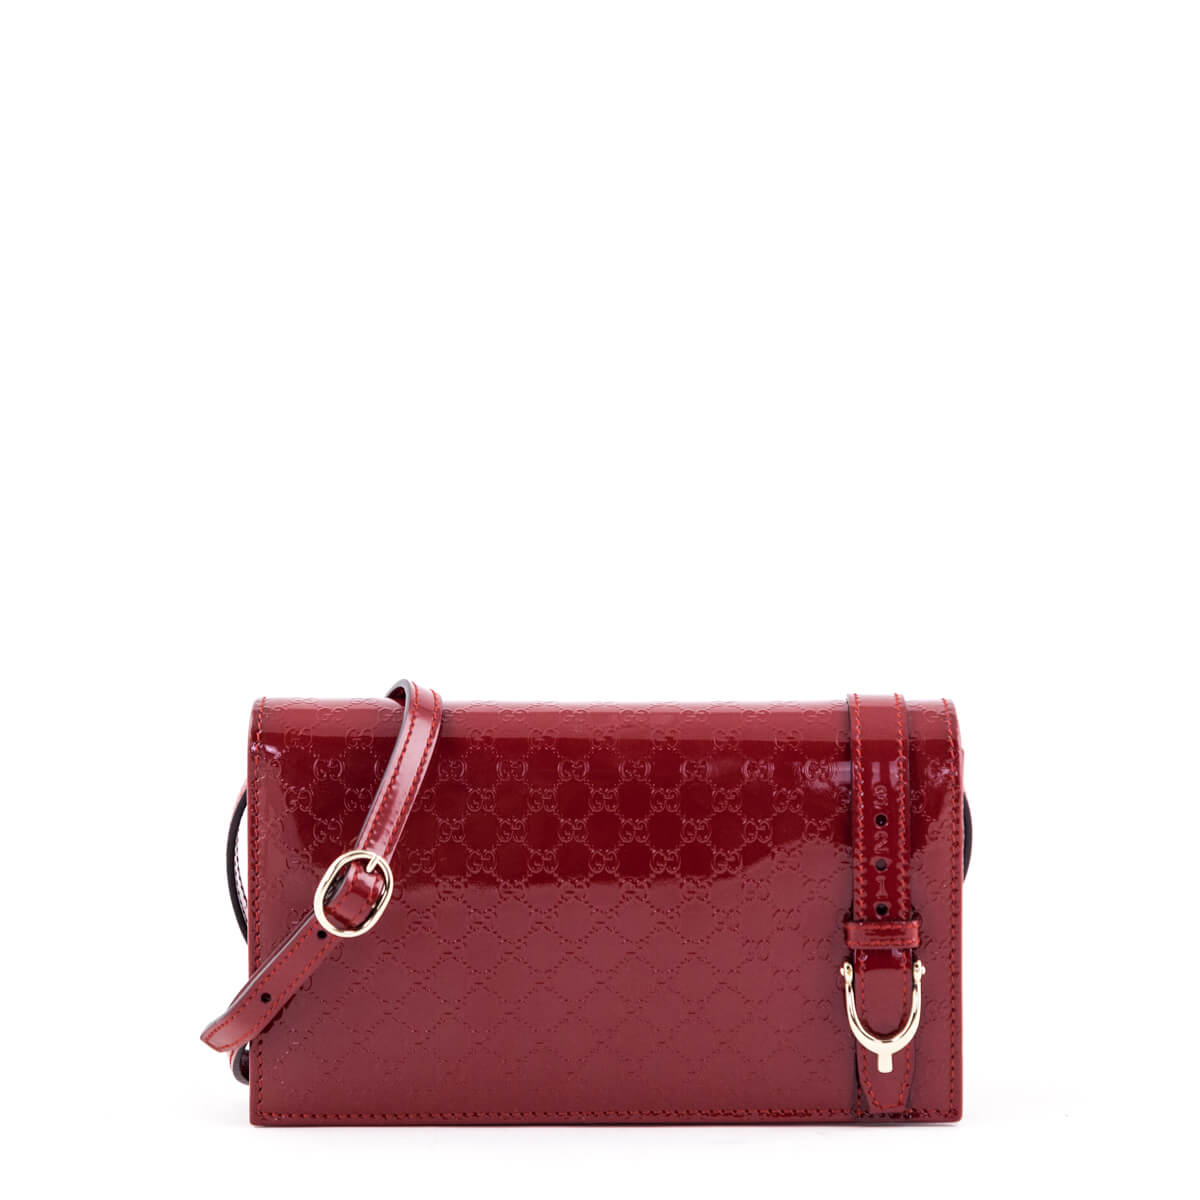 4dee18f49a96 Gucci Red Patent Micro Guccissima Nice Wallet on Chain - LOVE that BAG -  Preowned Authentic ...